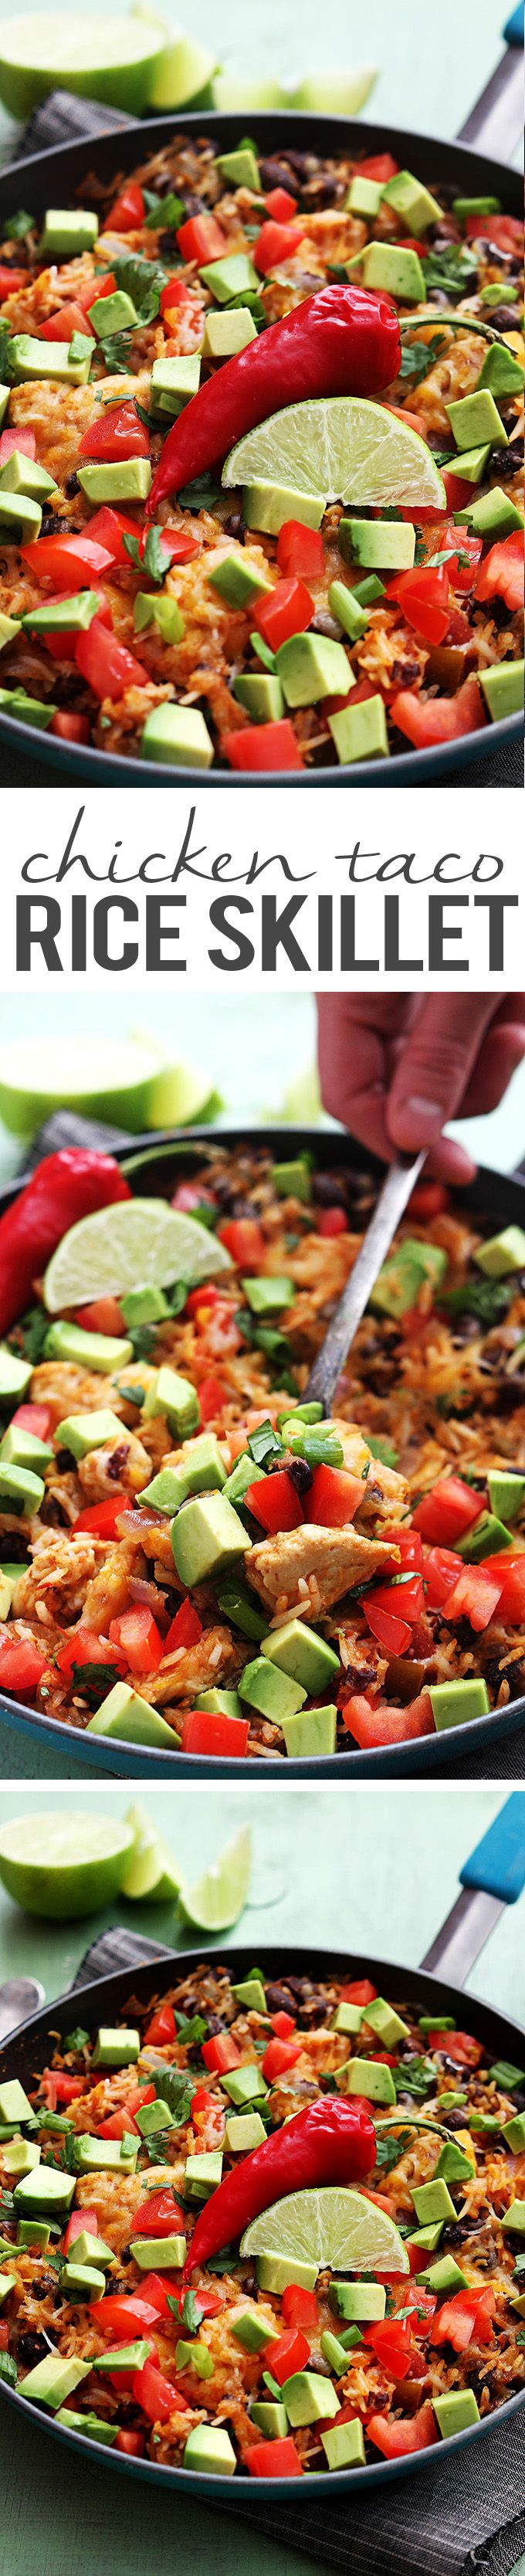 An easy one-pan dish with yummy Tex-Mex flavors. The rice, chicken ...